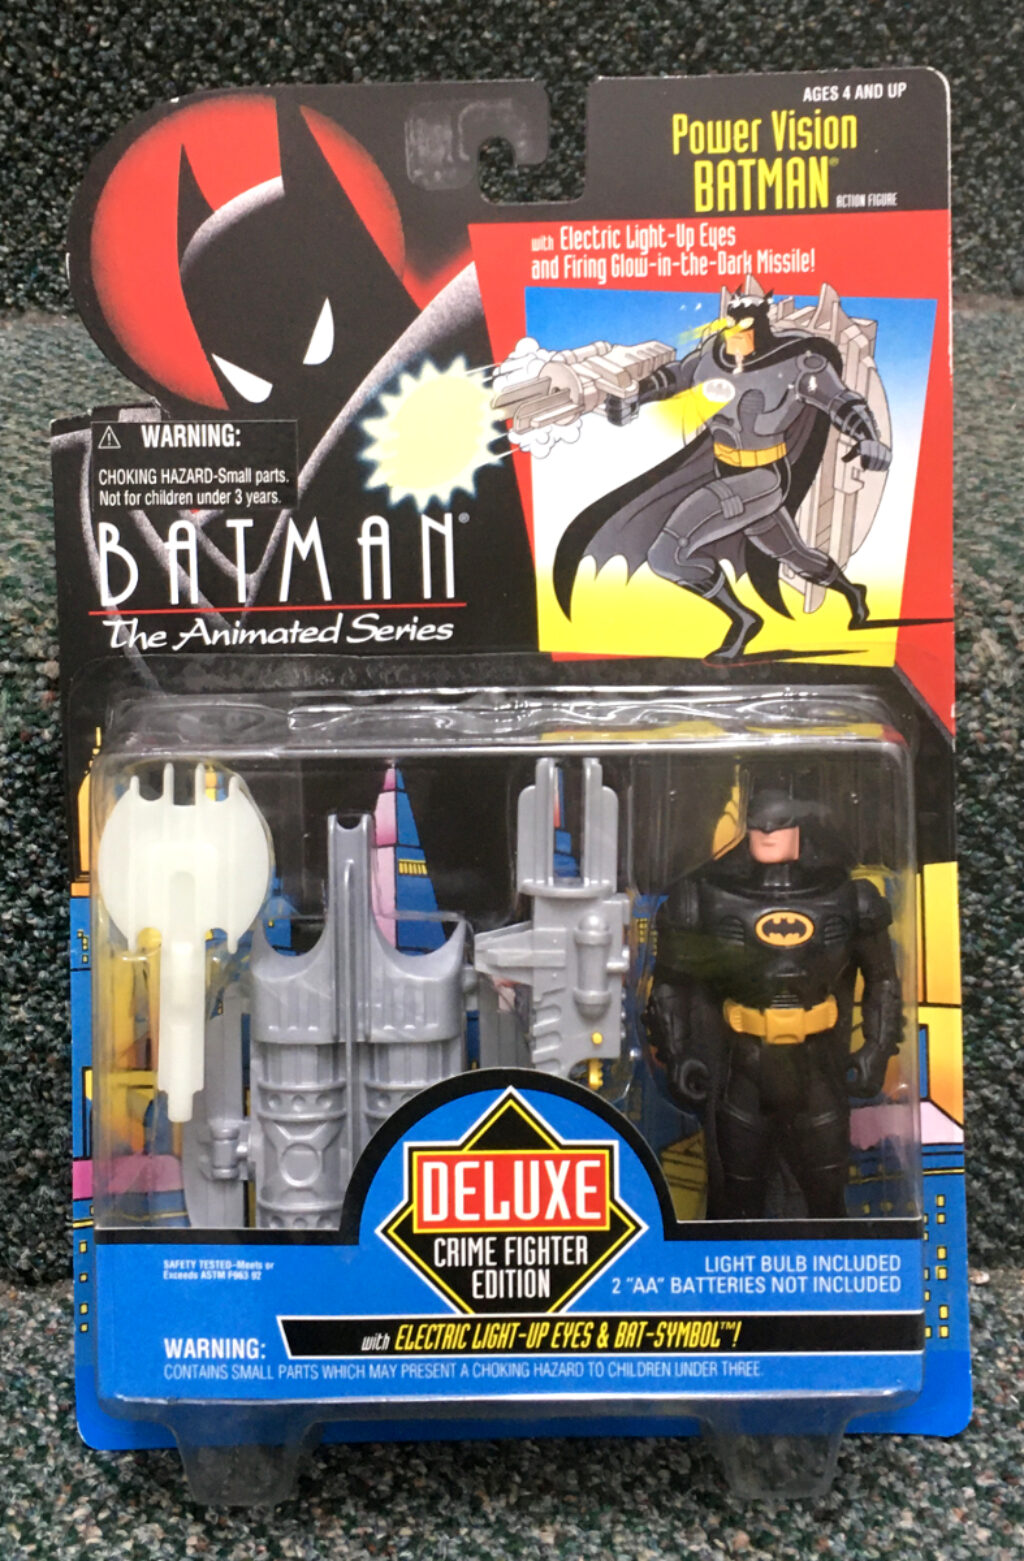 kenner batman the animated series power vision batman figure 1